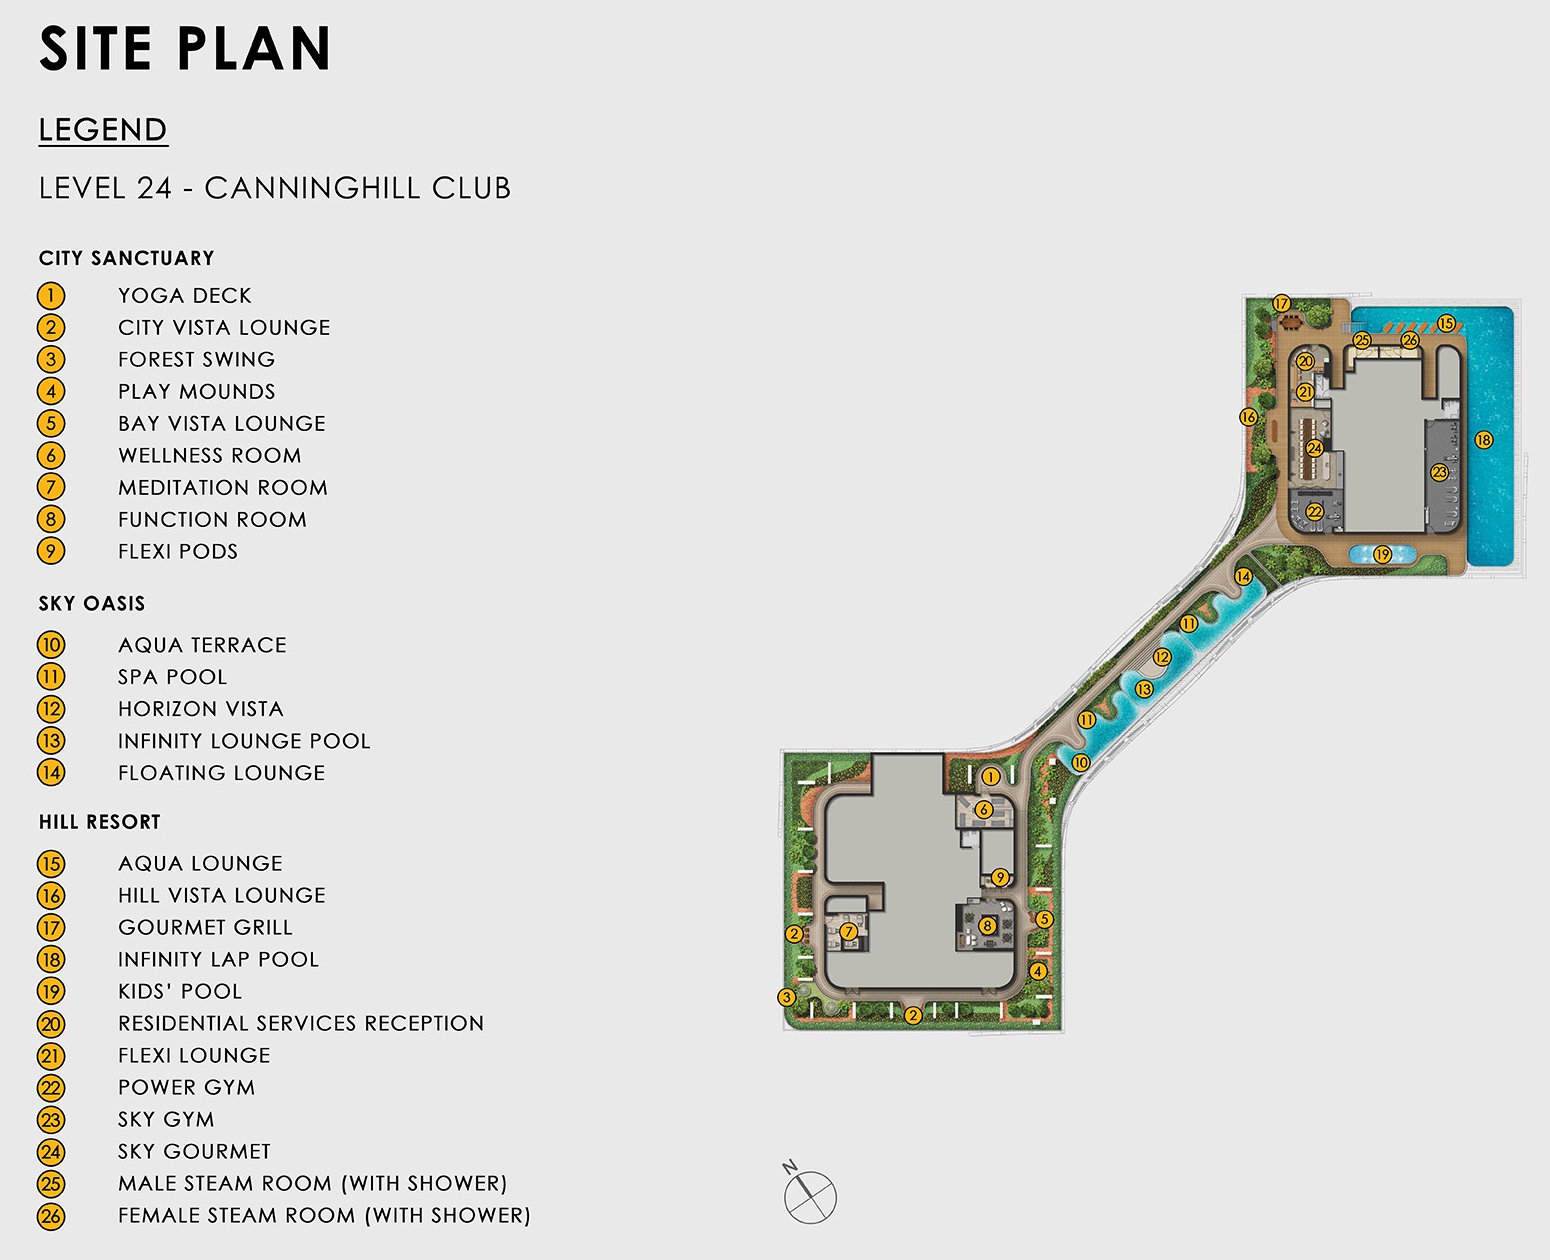 Canninghill Piers Site Plan . Level 24